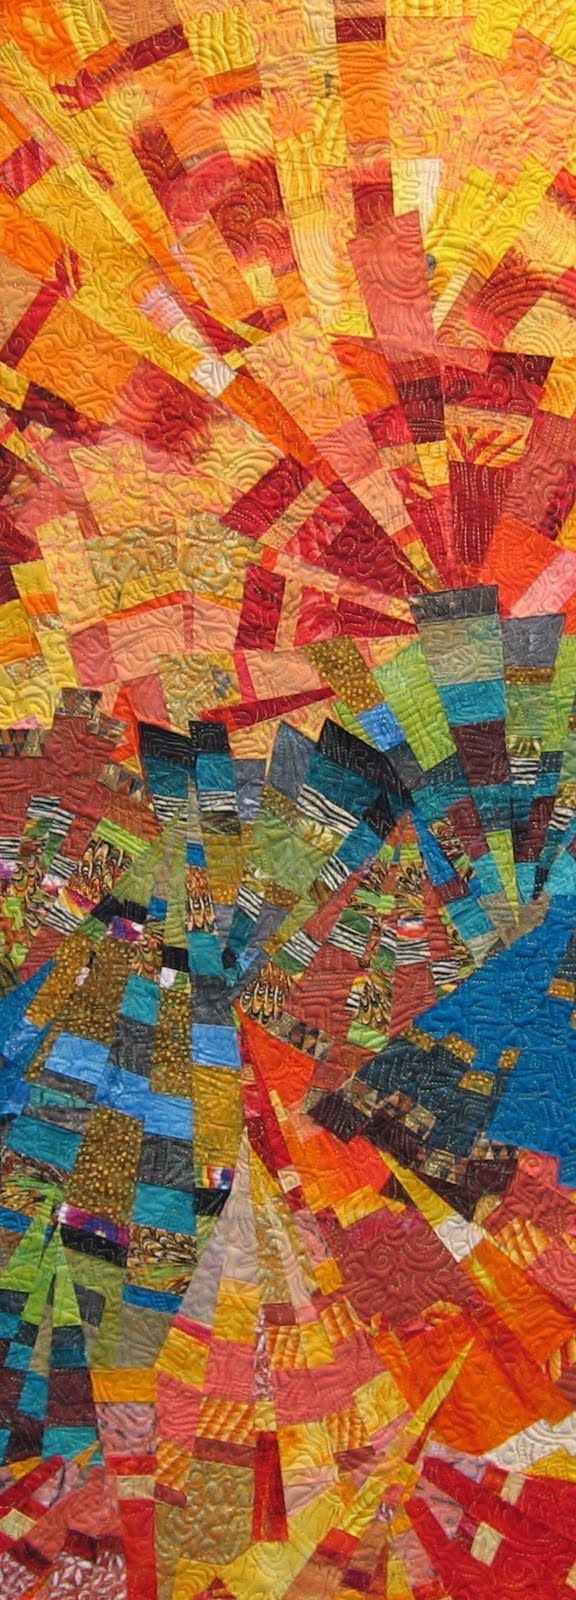 itsallaboutme: Sewn, Slashed and Sewn Quilts